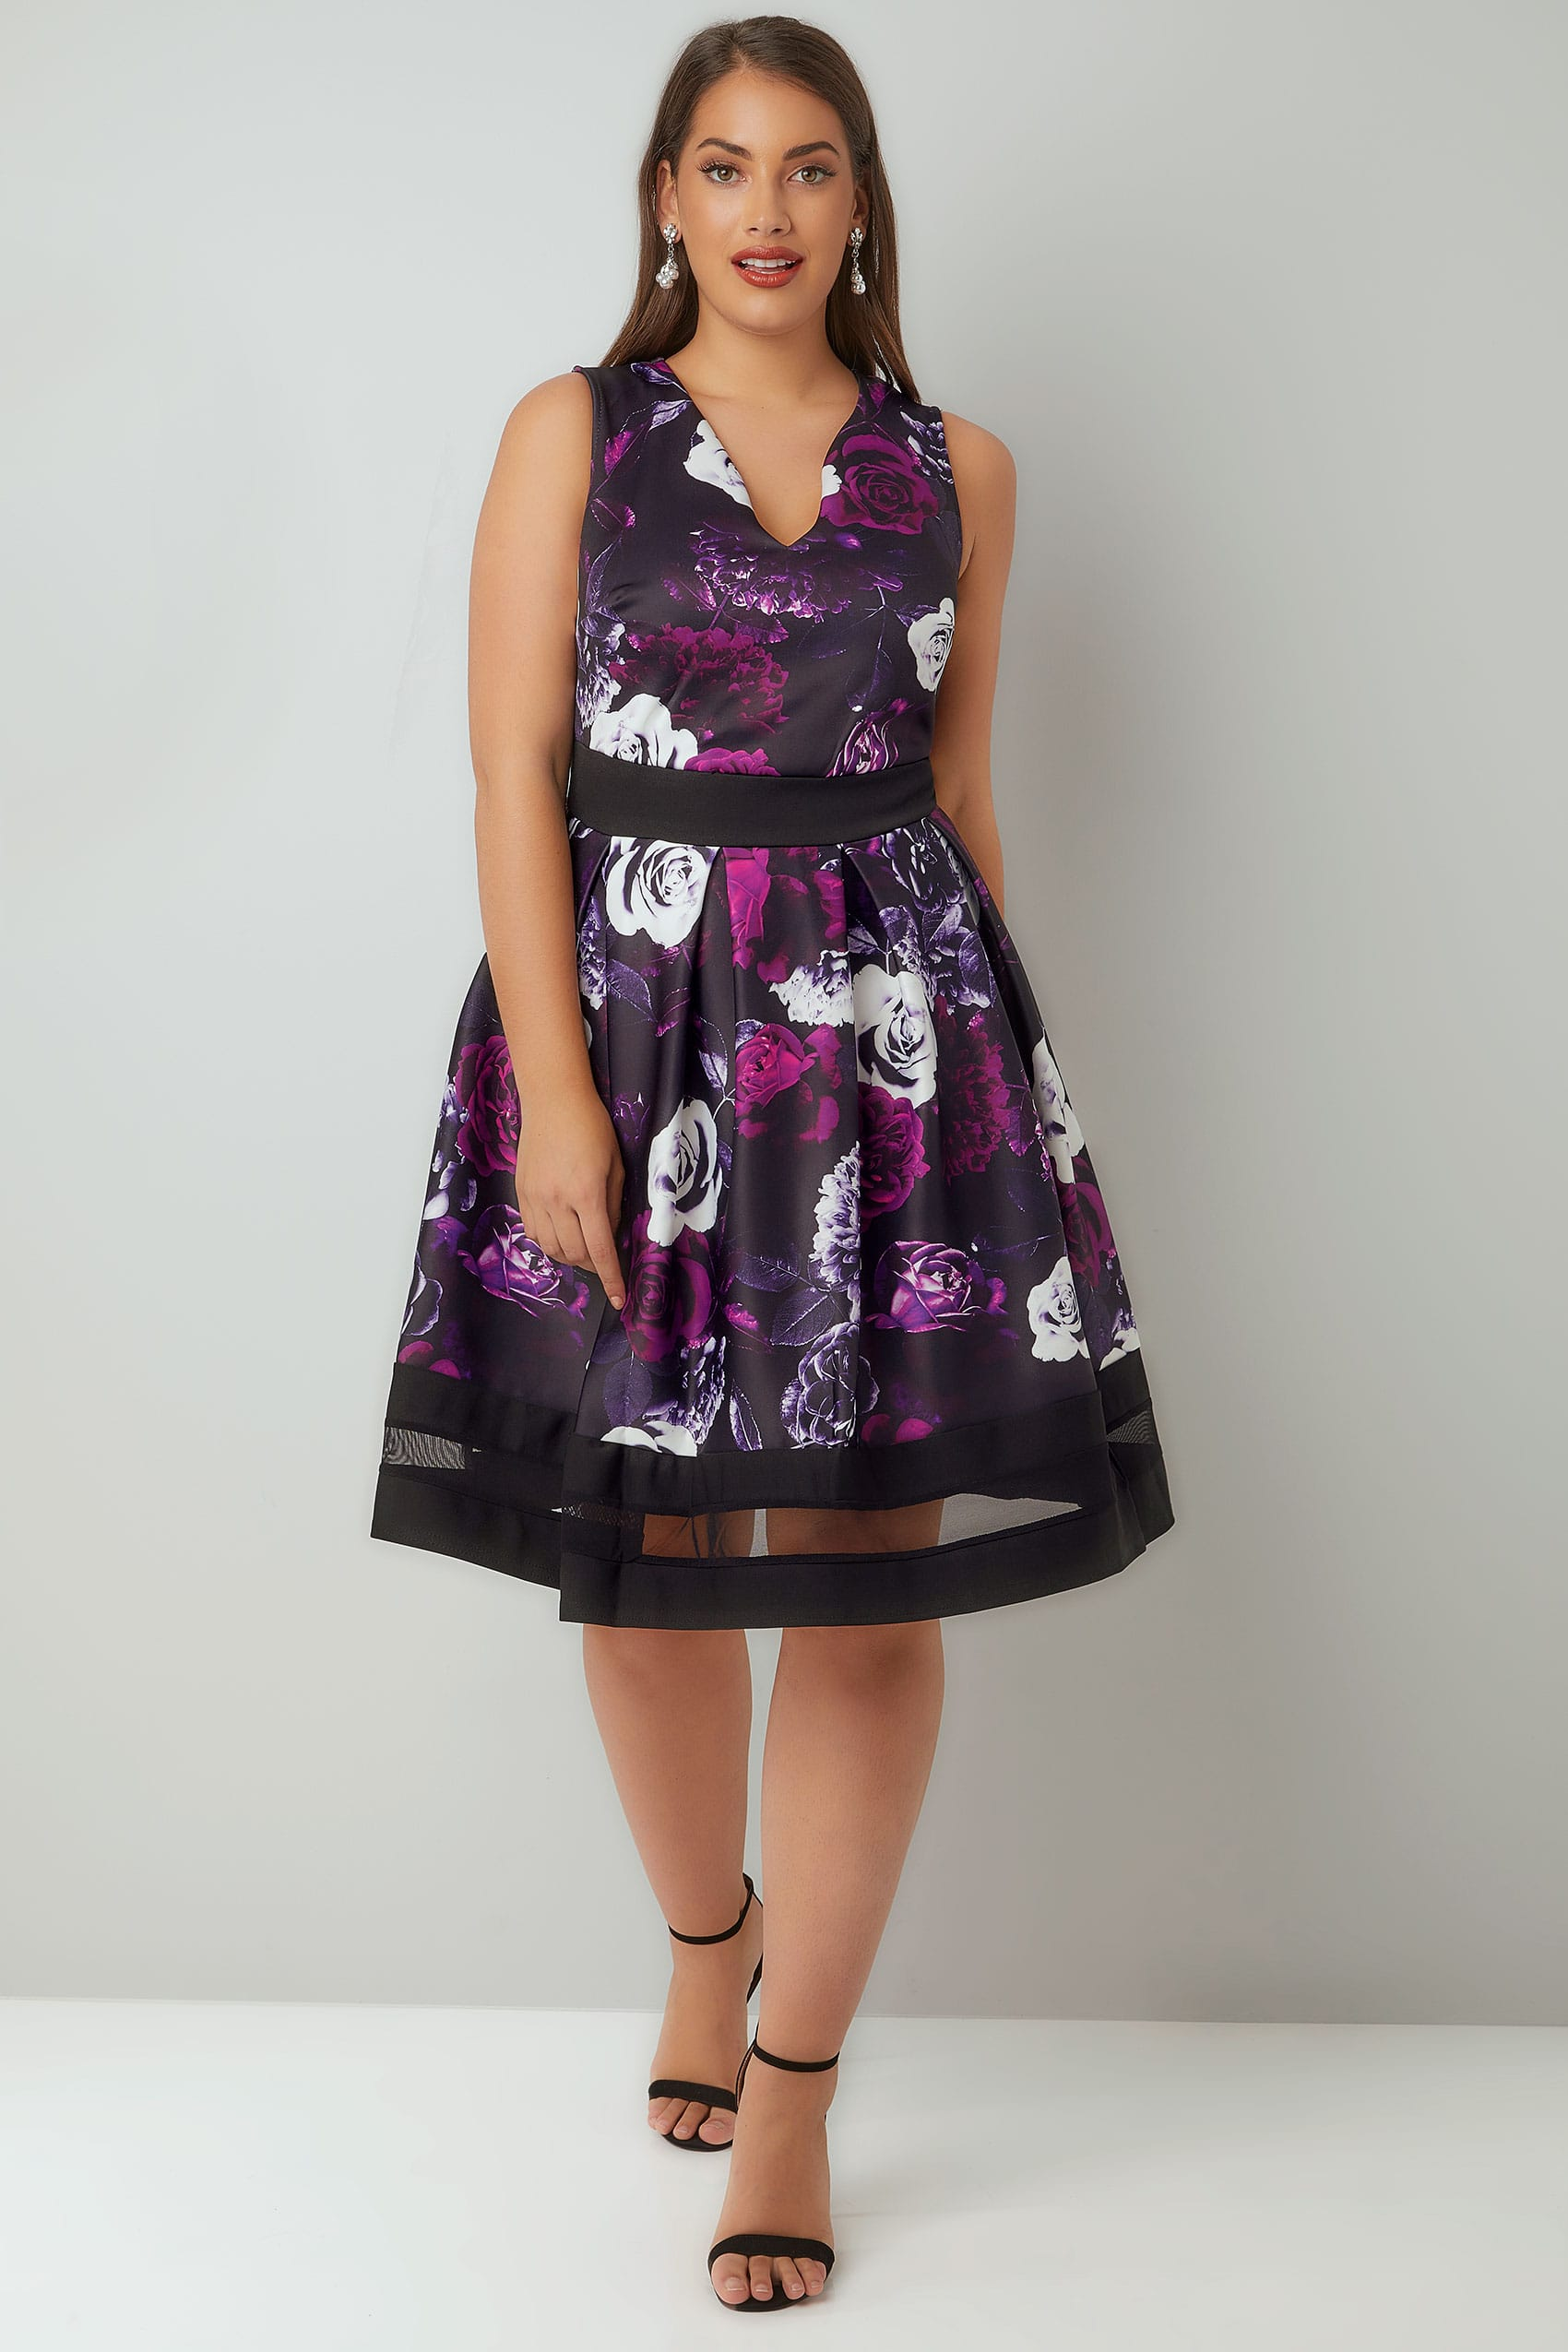 355e6e536643 Purple   Black Floral Print Scuba Skater Dress